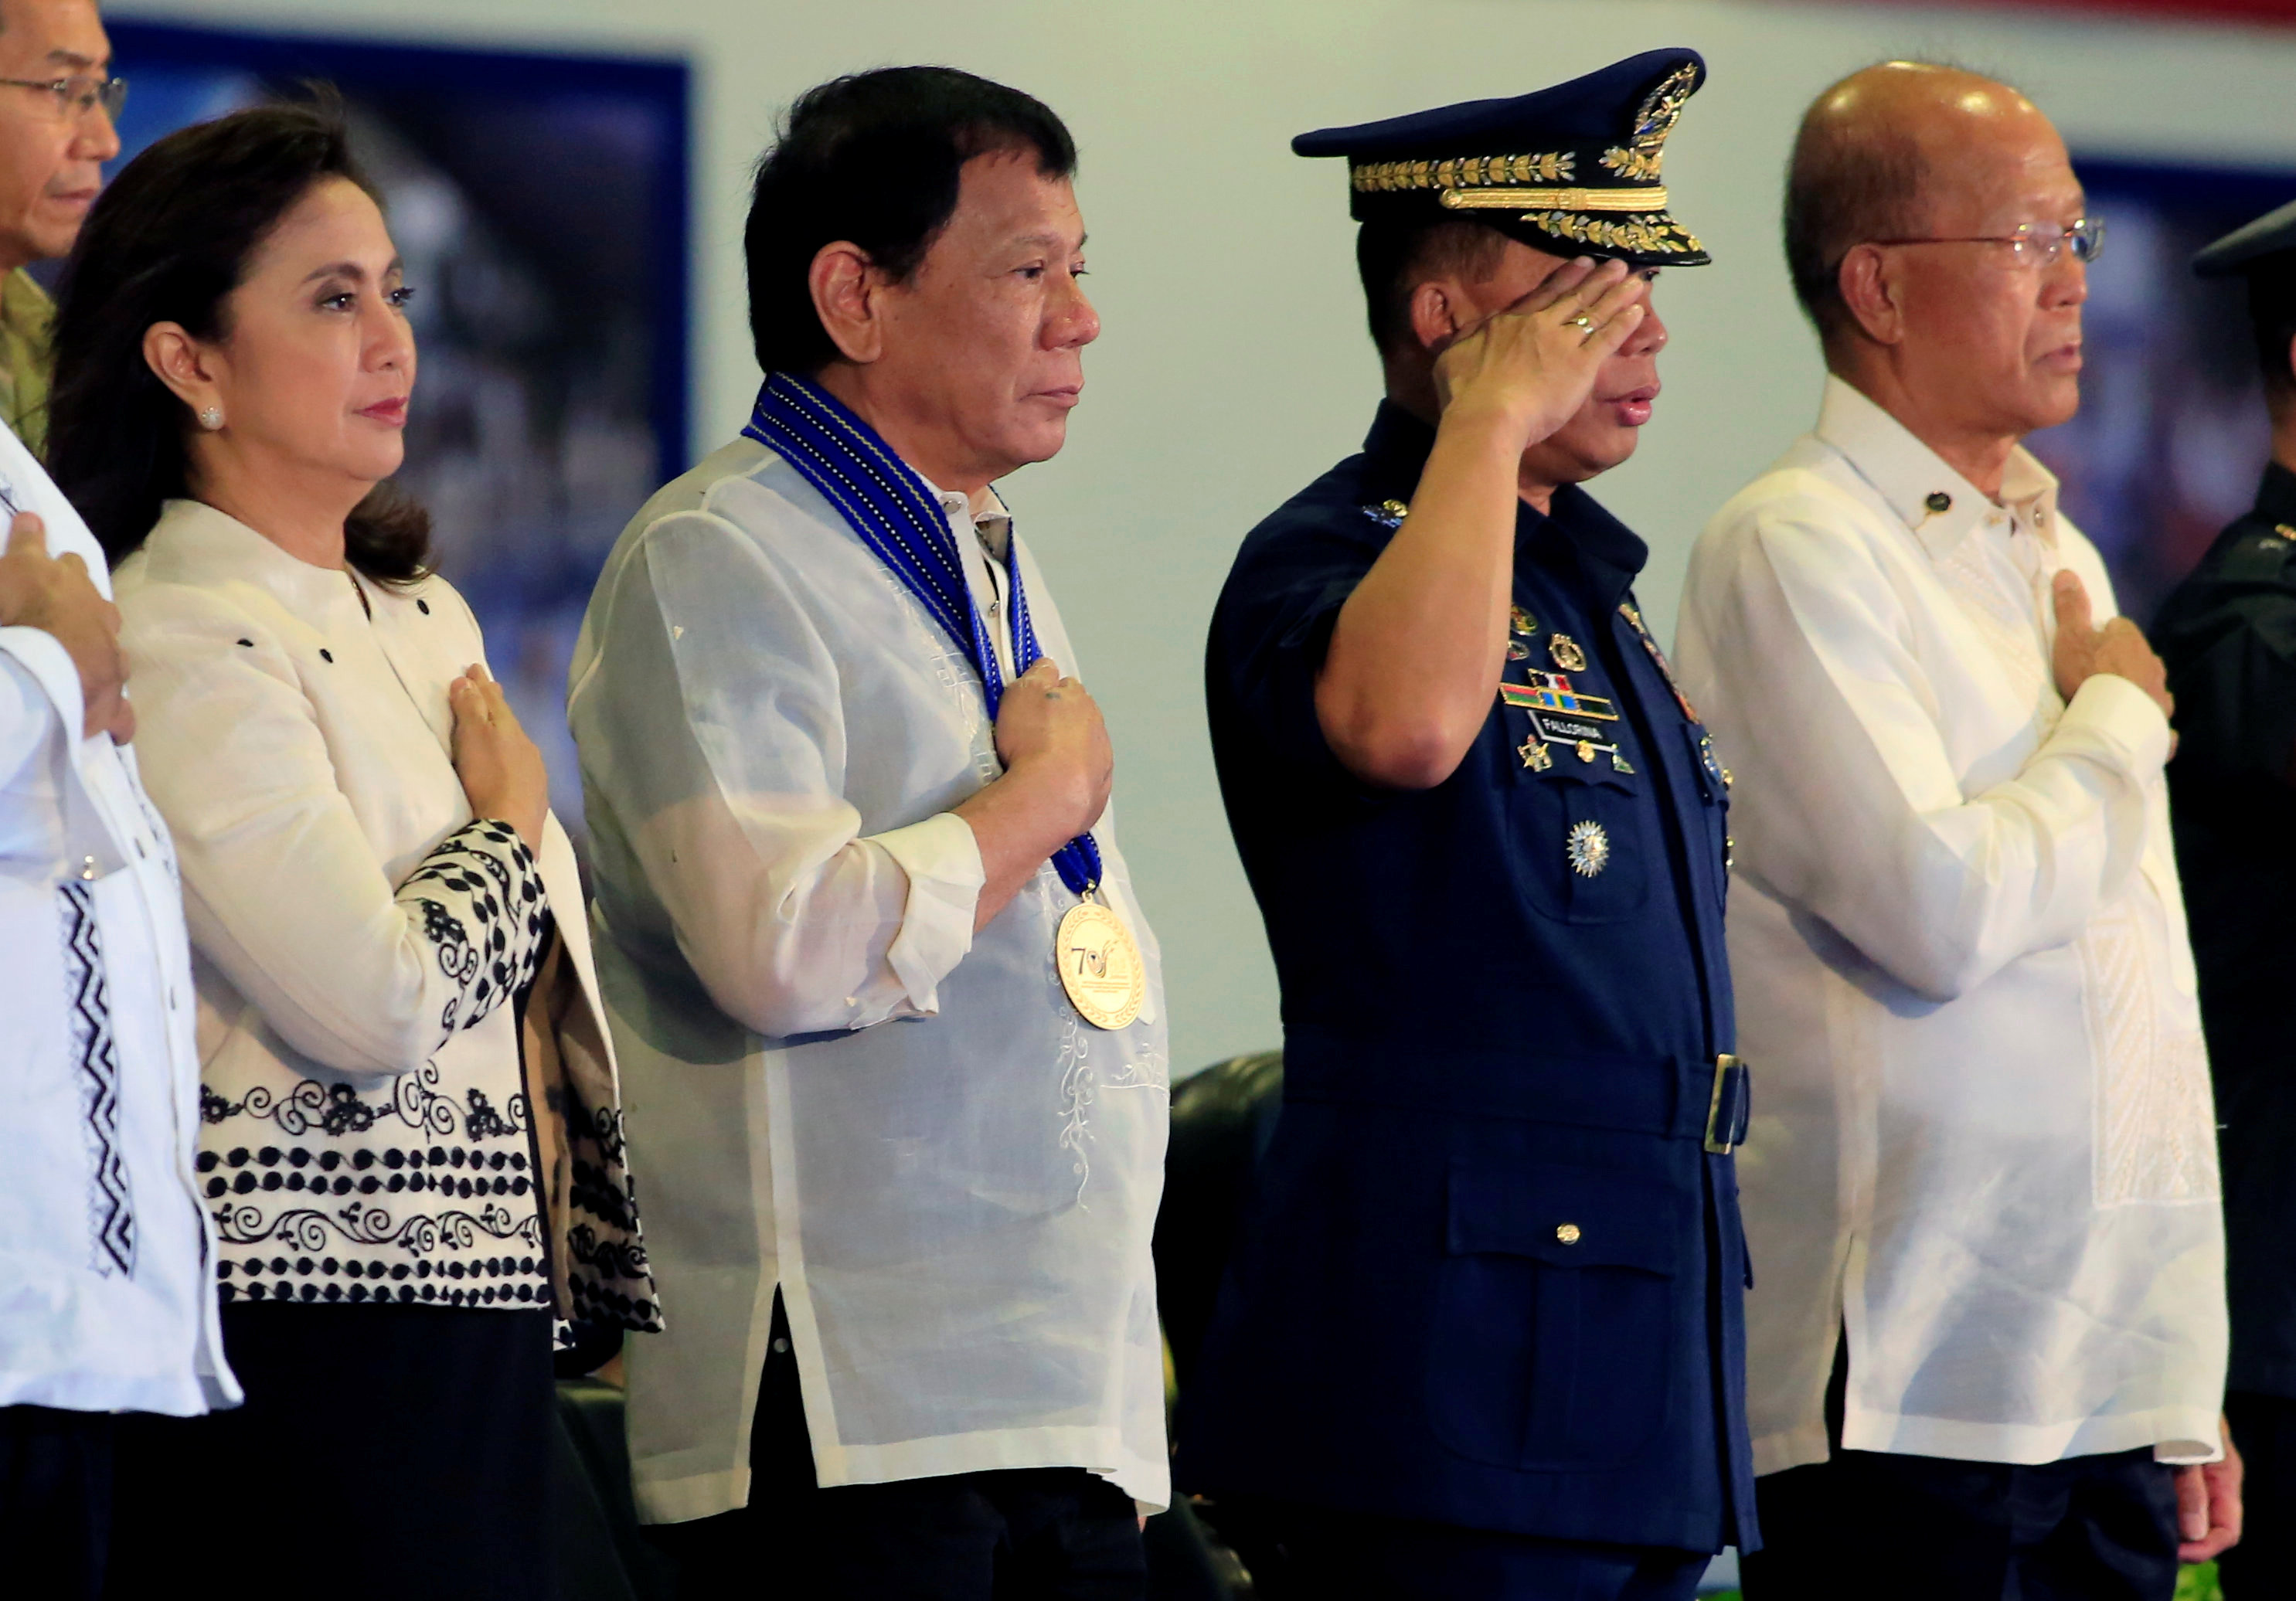 Duterte proposed deal to end Marawi City siege, then backed out